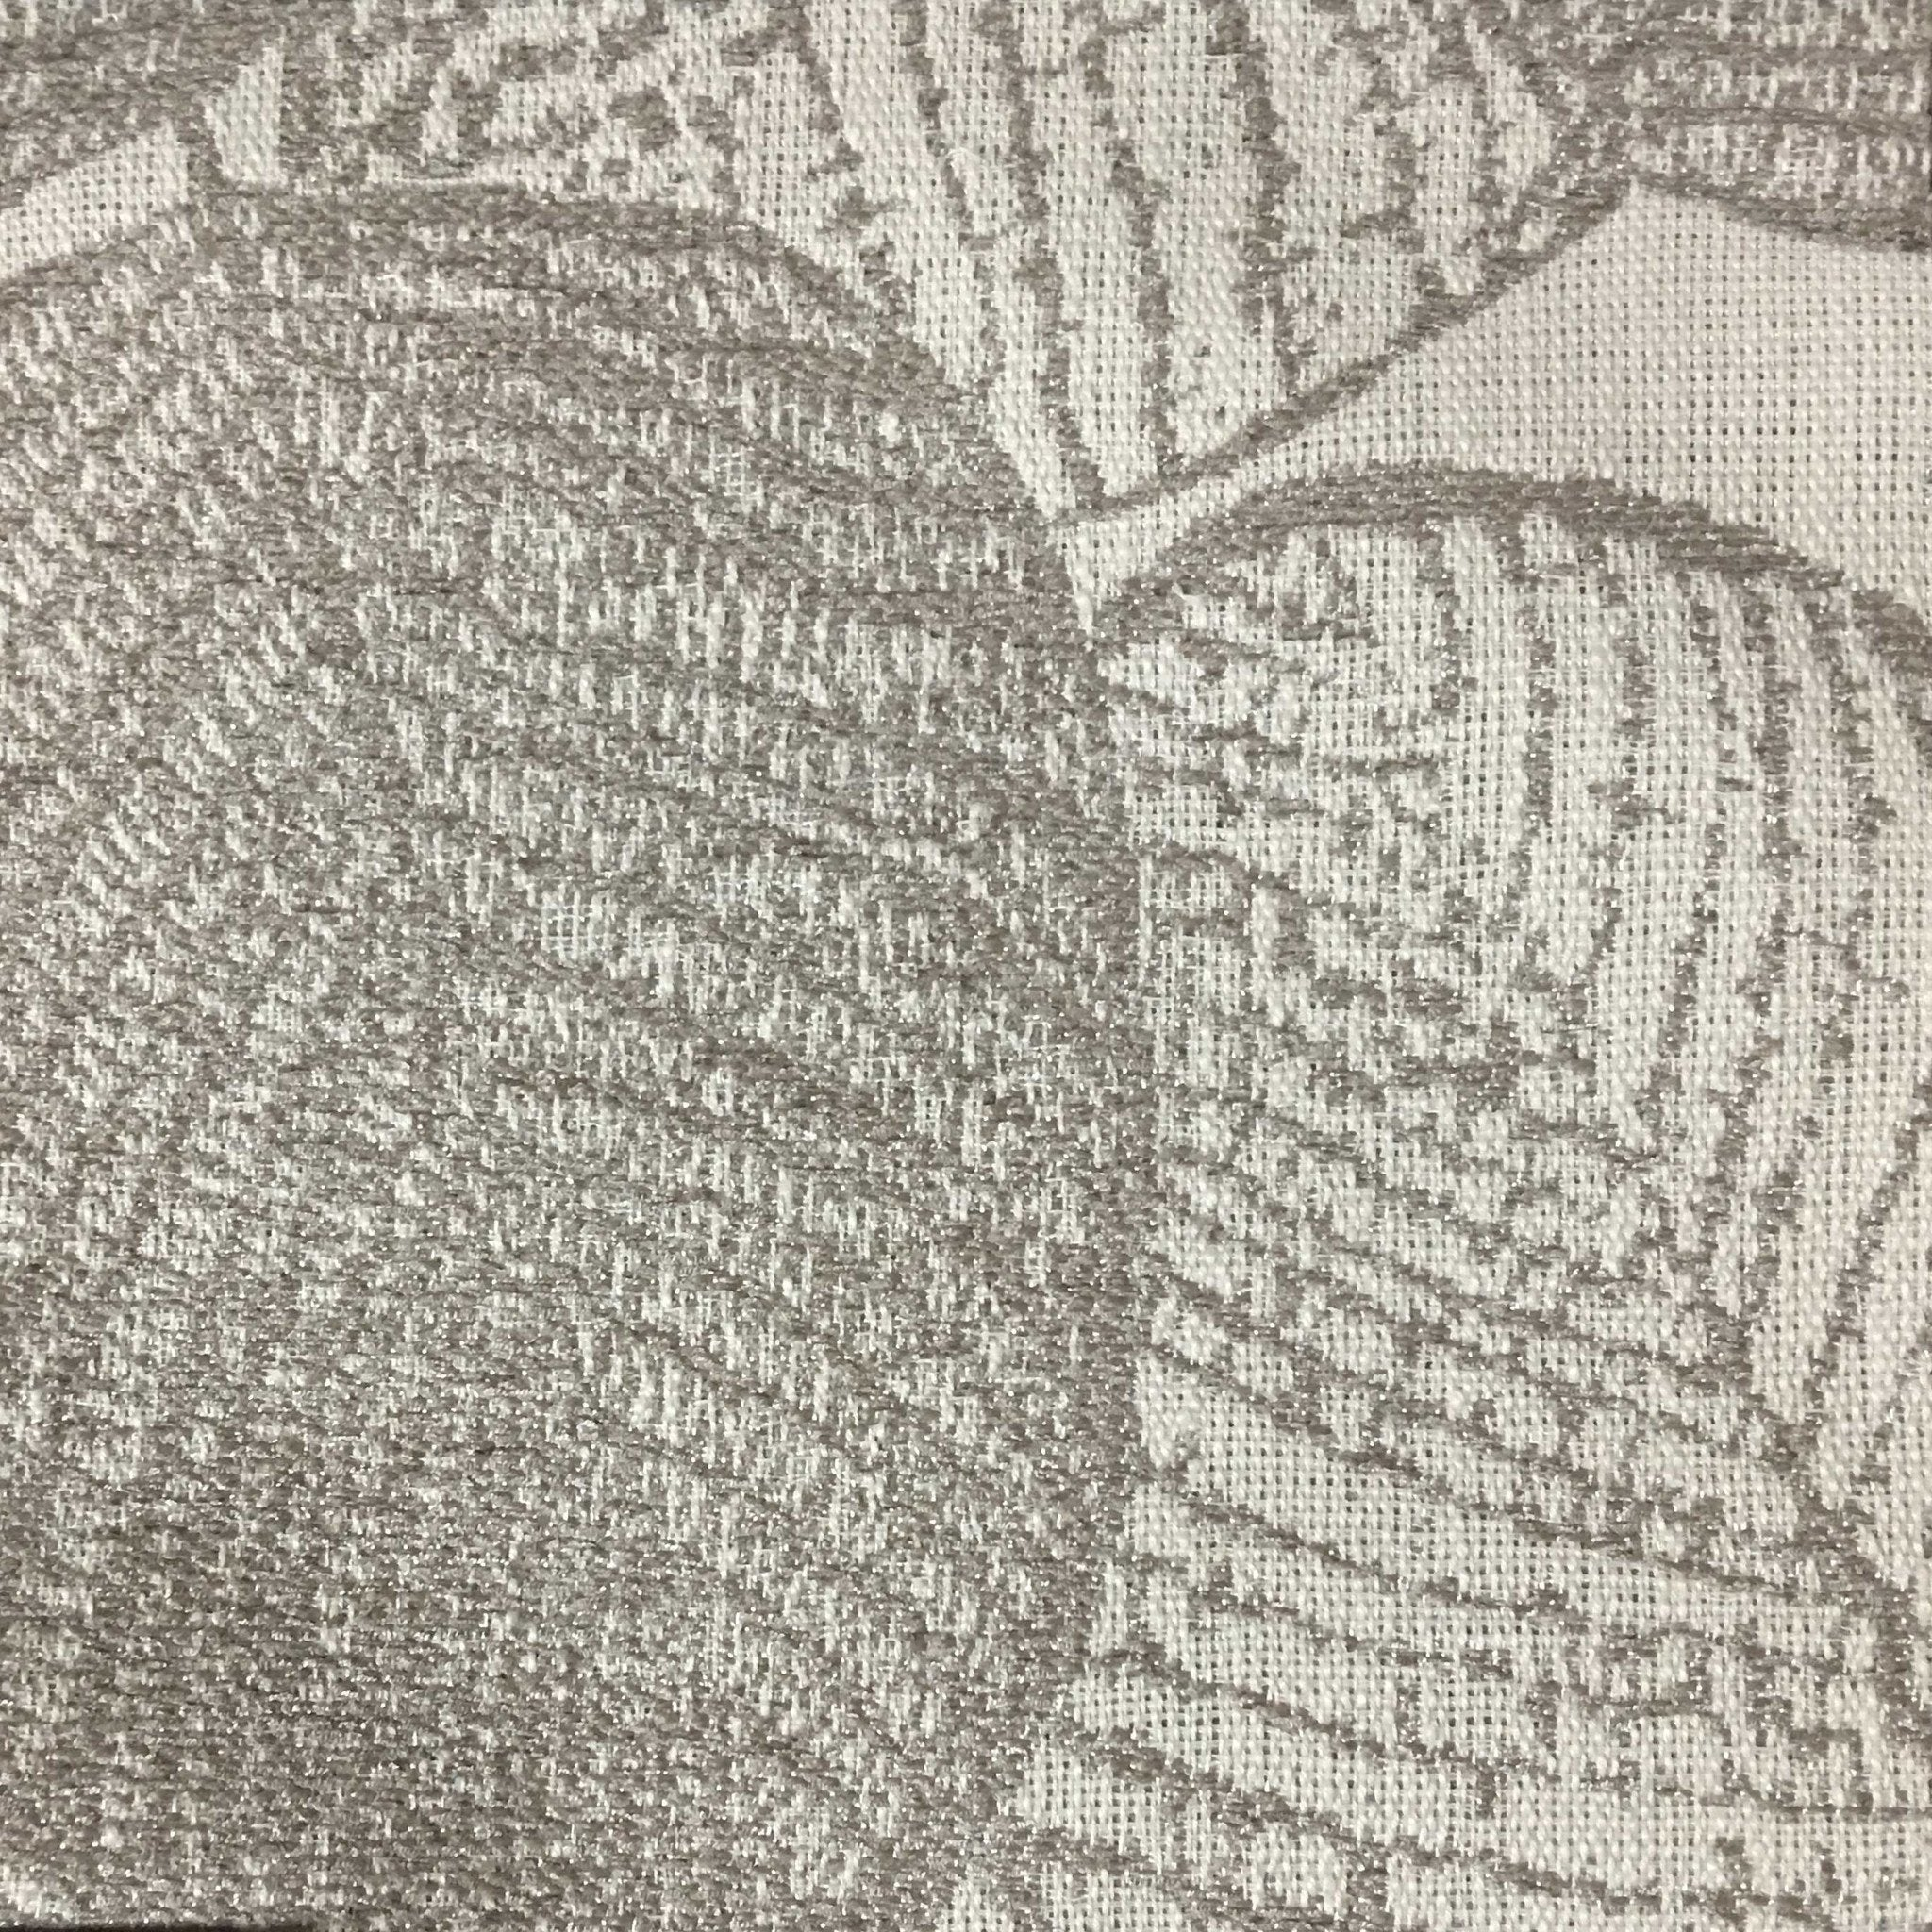 Upholstery Means: Tropical Pattern Woven Texture Upholstery Fabric